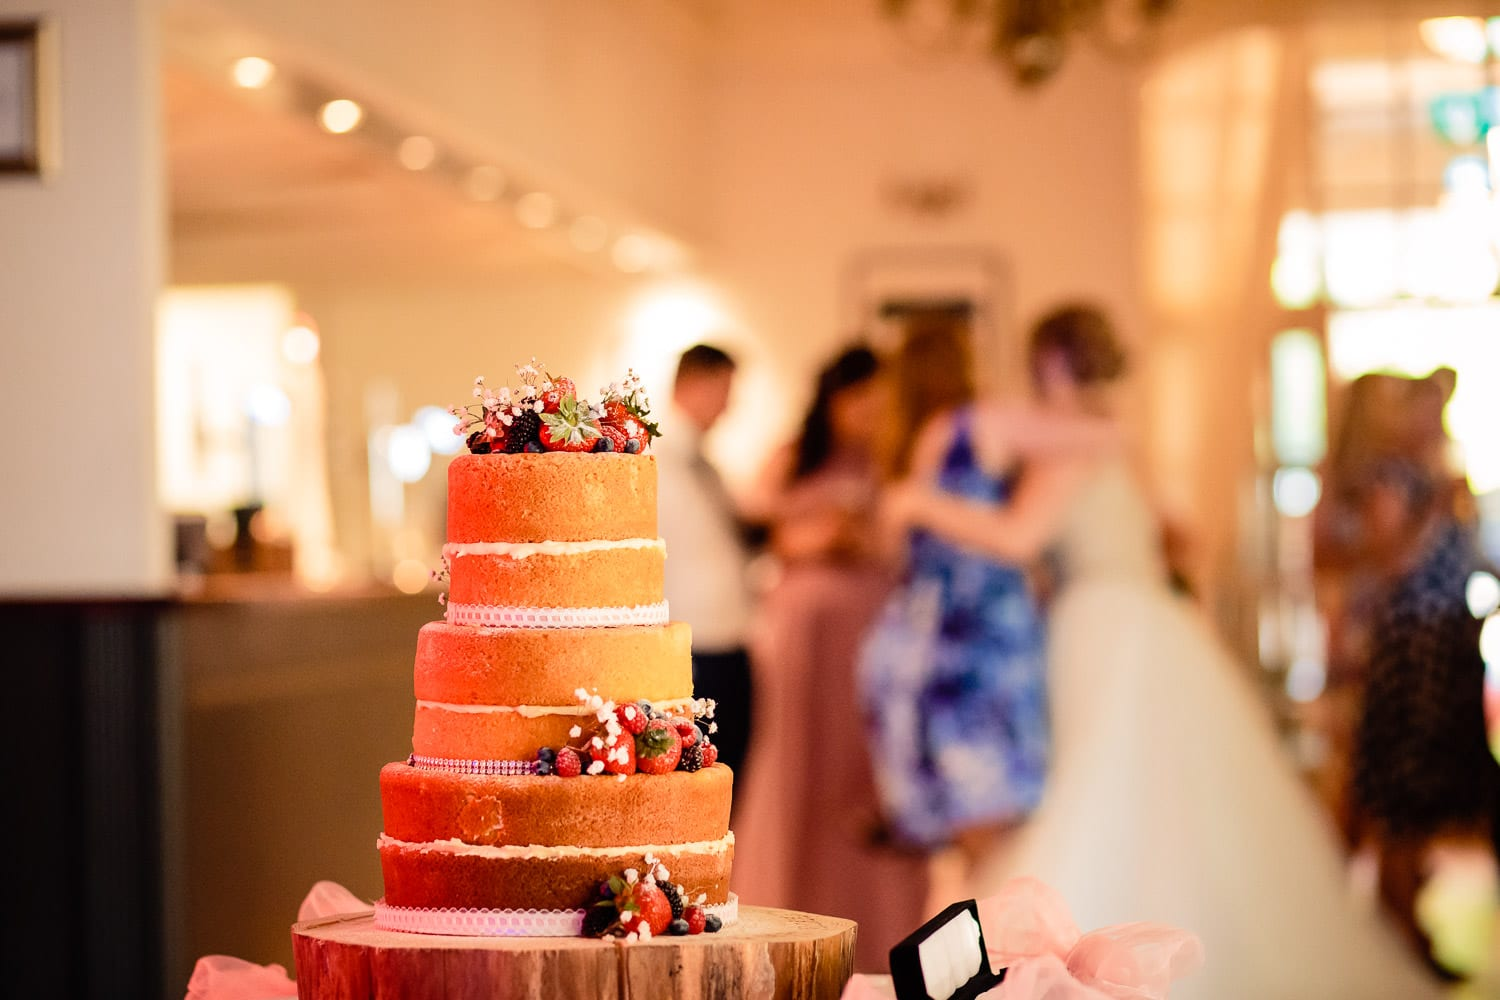 Warwick House Wedding Photography capures beautiful naked cake wedding cake with berries